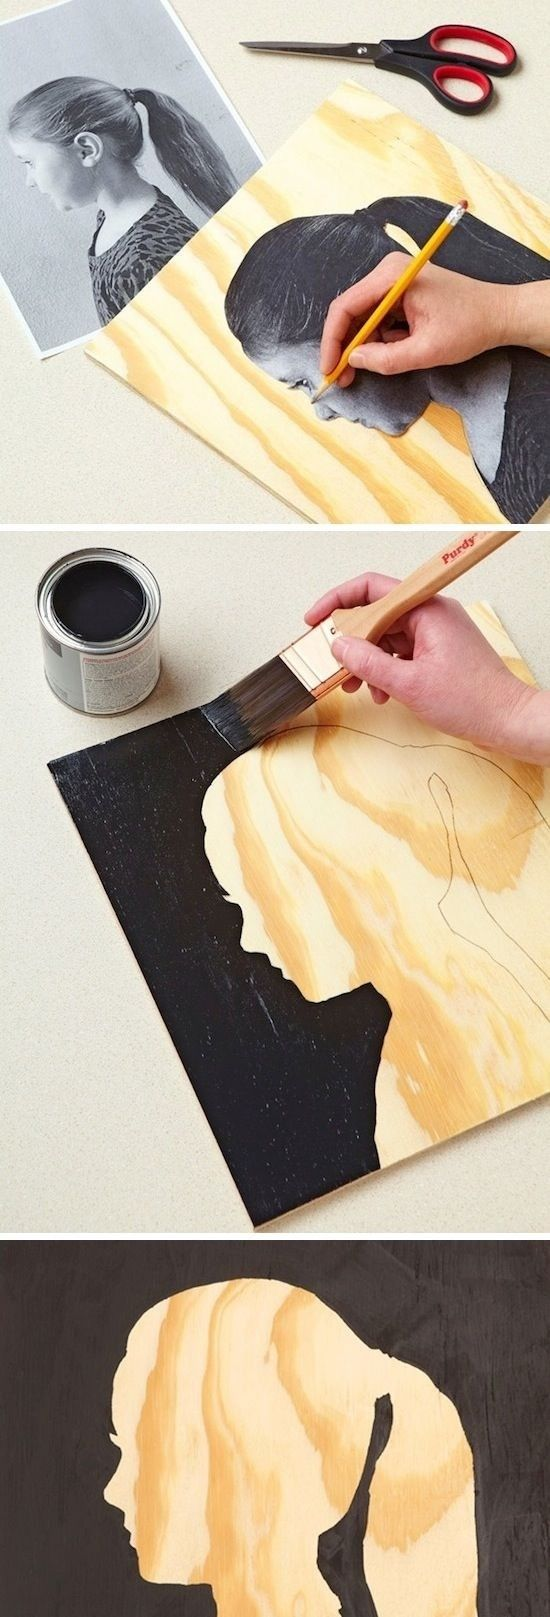 Easy Silhouette Wall Art! Would Be Fun To Do With The Kids! Cute!